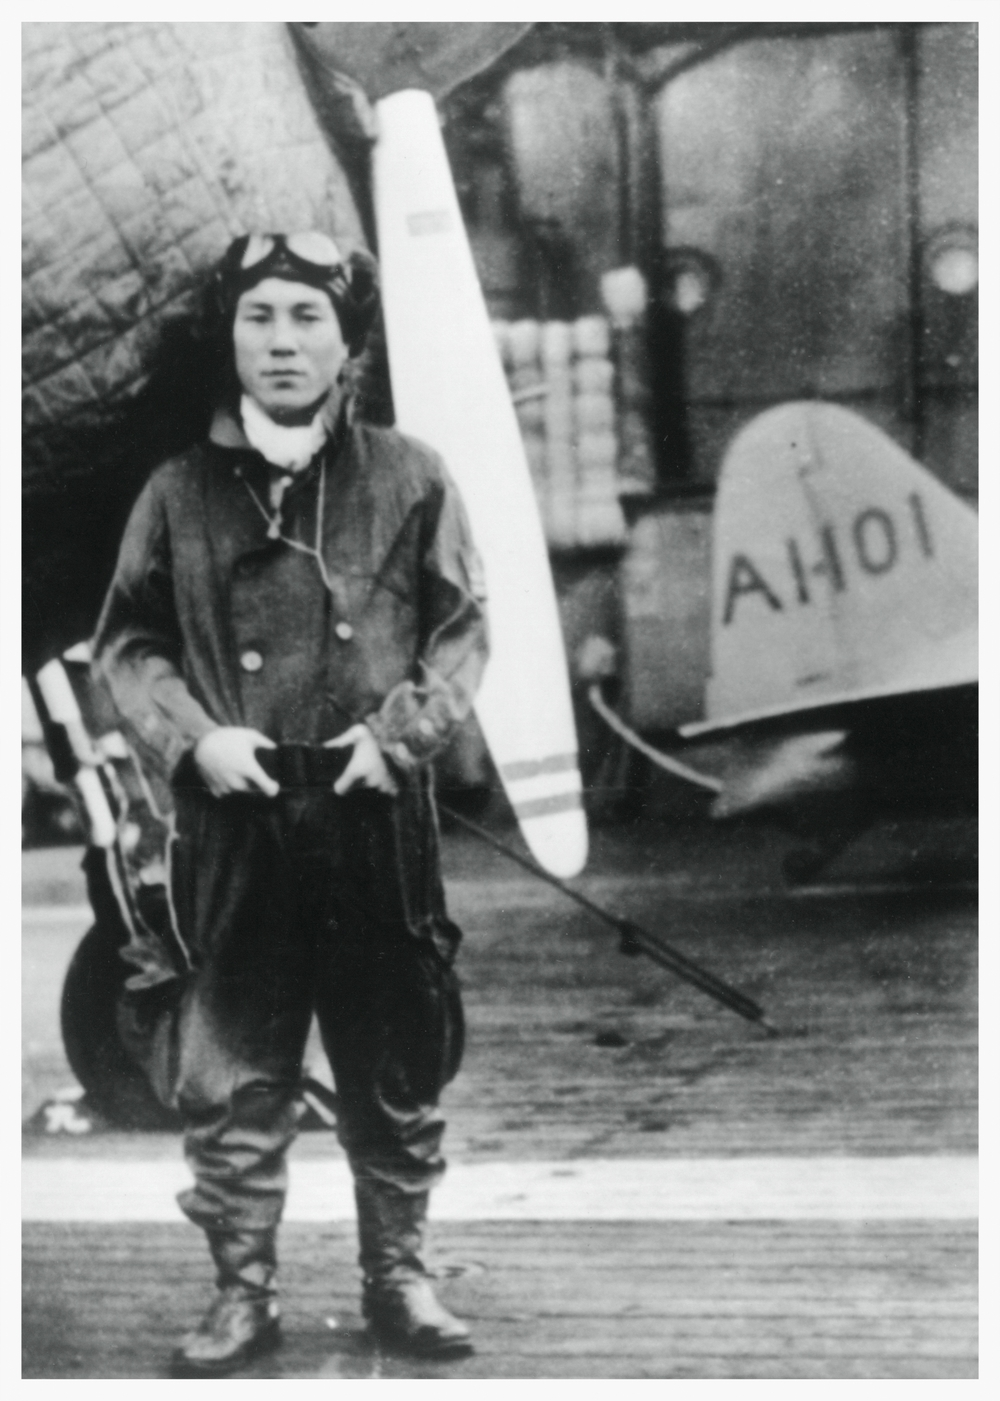 Zenji Abe on the aircraft carrier, Akagi, 1941.